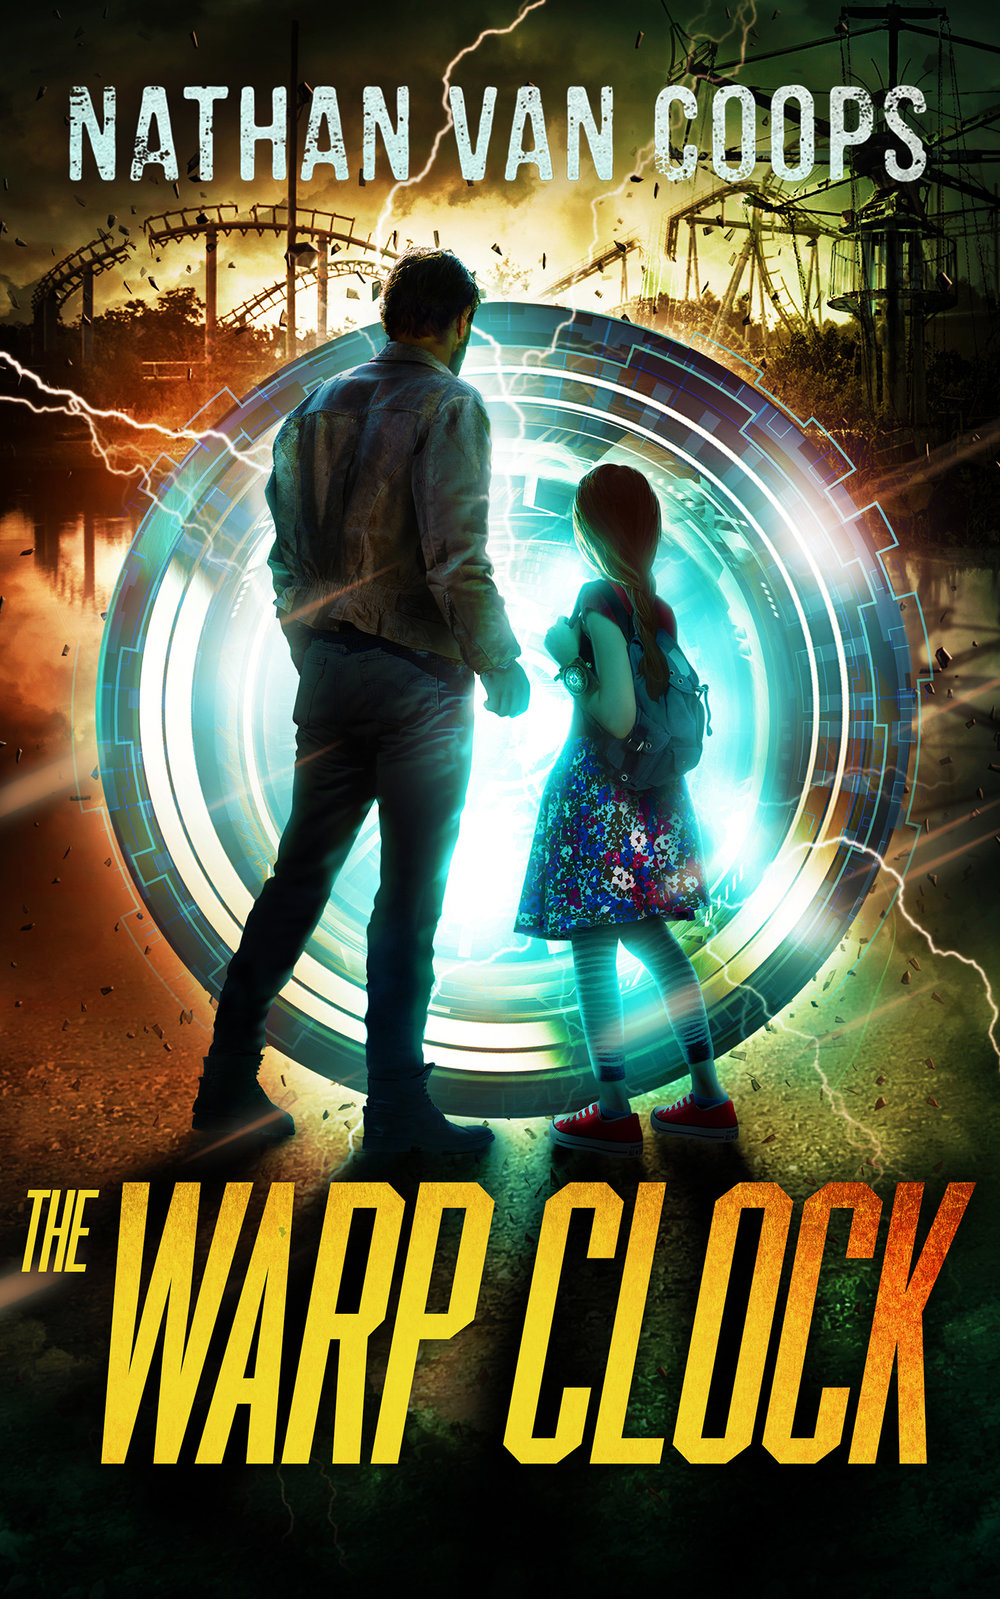 The Warp Clock 2018 - Ebook Small.jpg